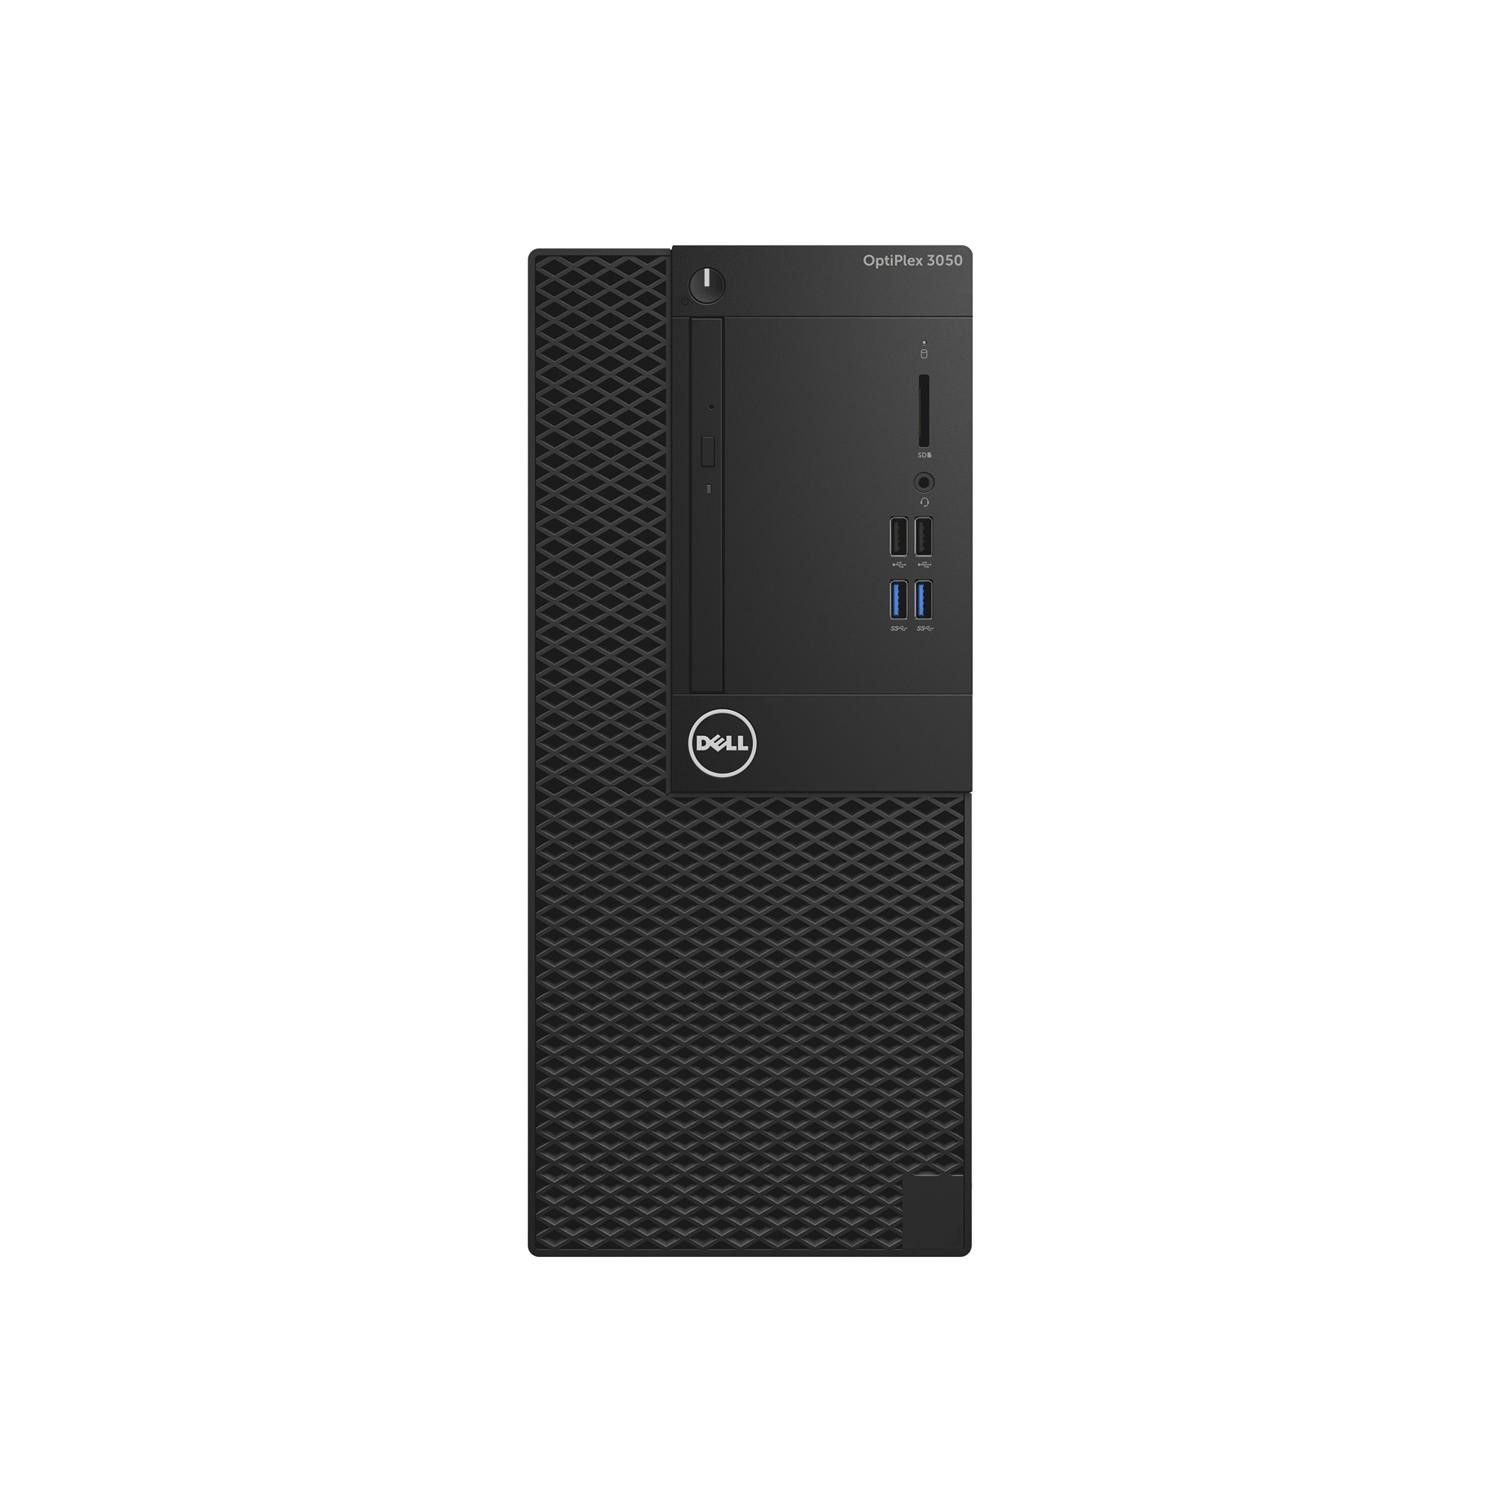 Image result for Dell OptiPlex 3050 Mini Tower ci3 desktop with 18.5 led